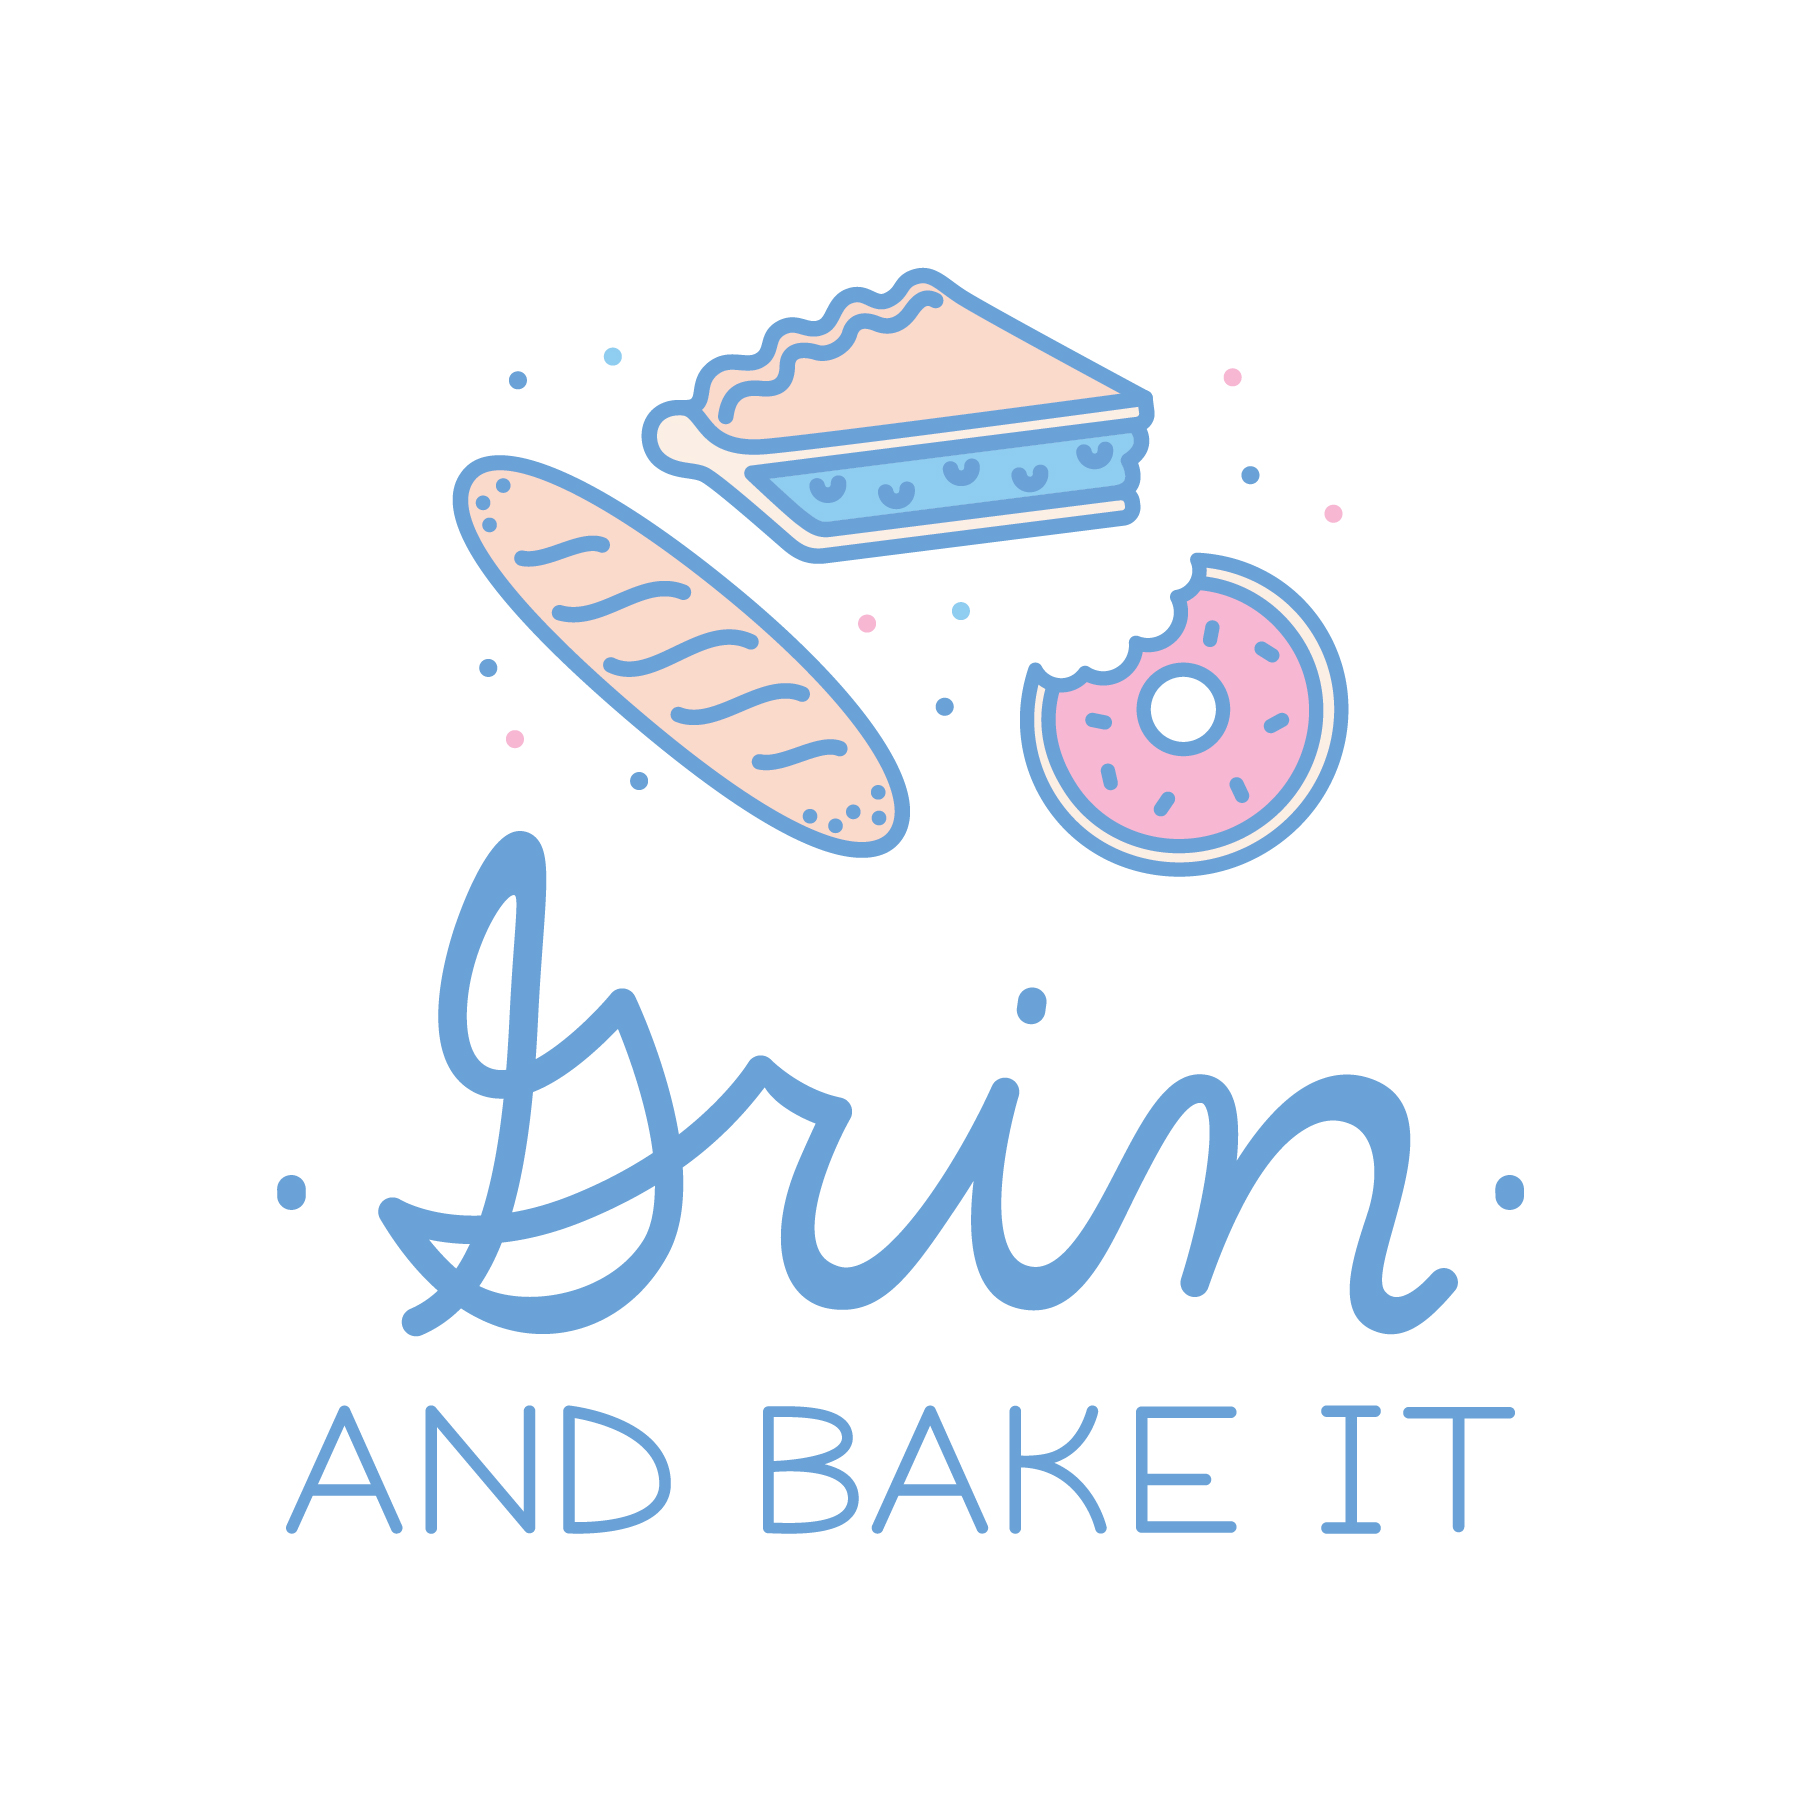 Cute Bakery Logo